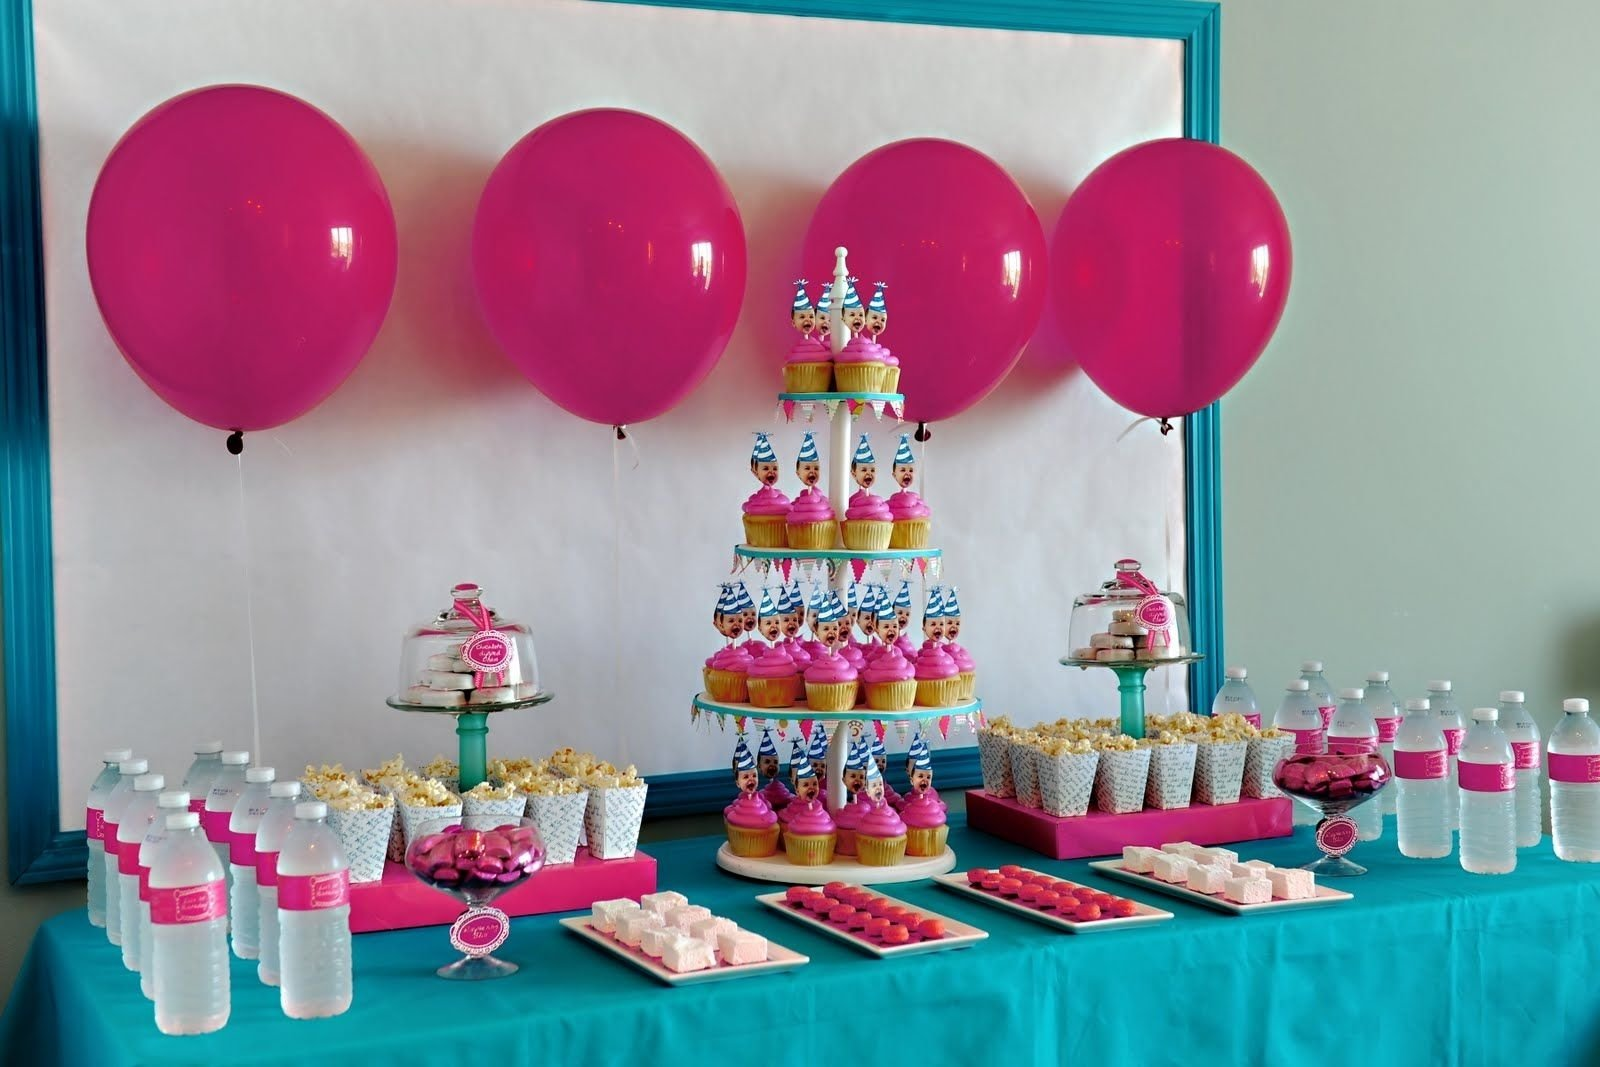 10 Perfect One Year Old Birthday Party Ideas outside party ideas 1st birthday bella grace party designs real 5 2020